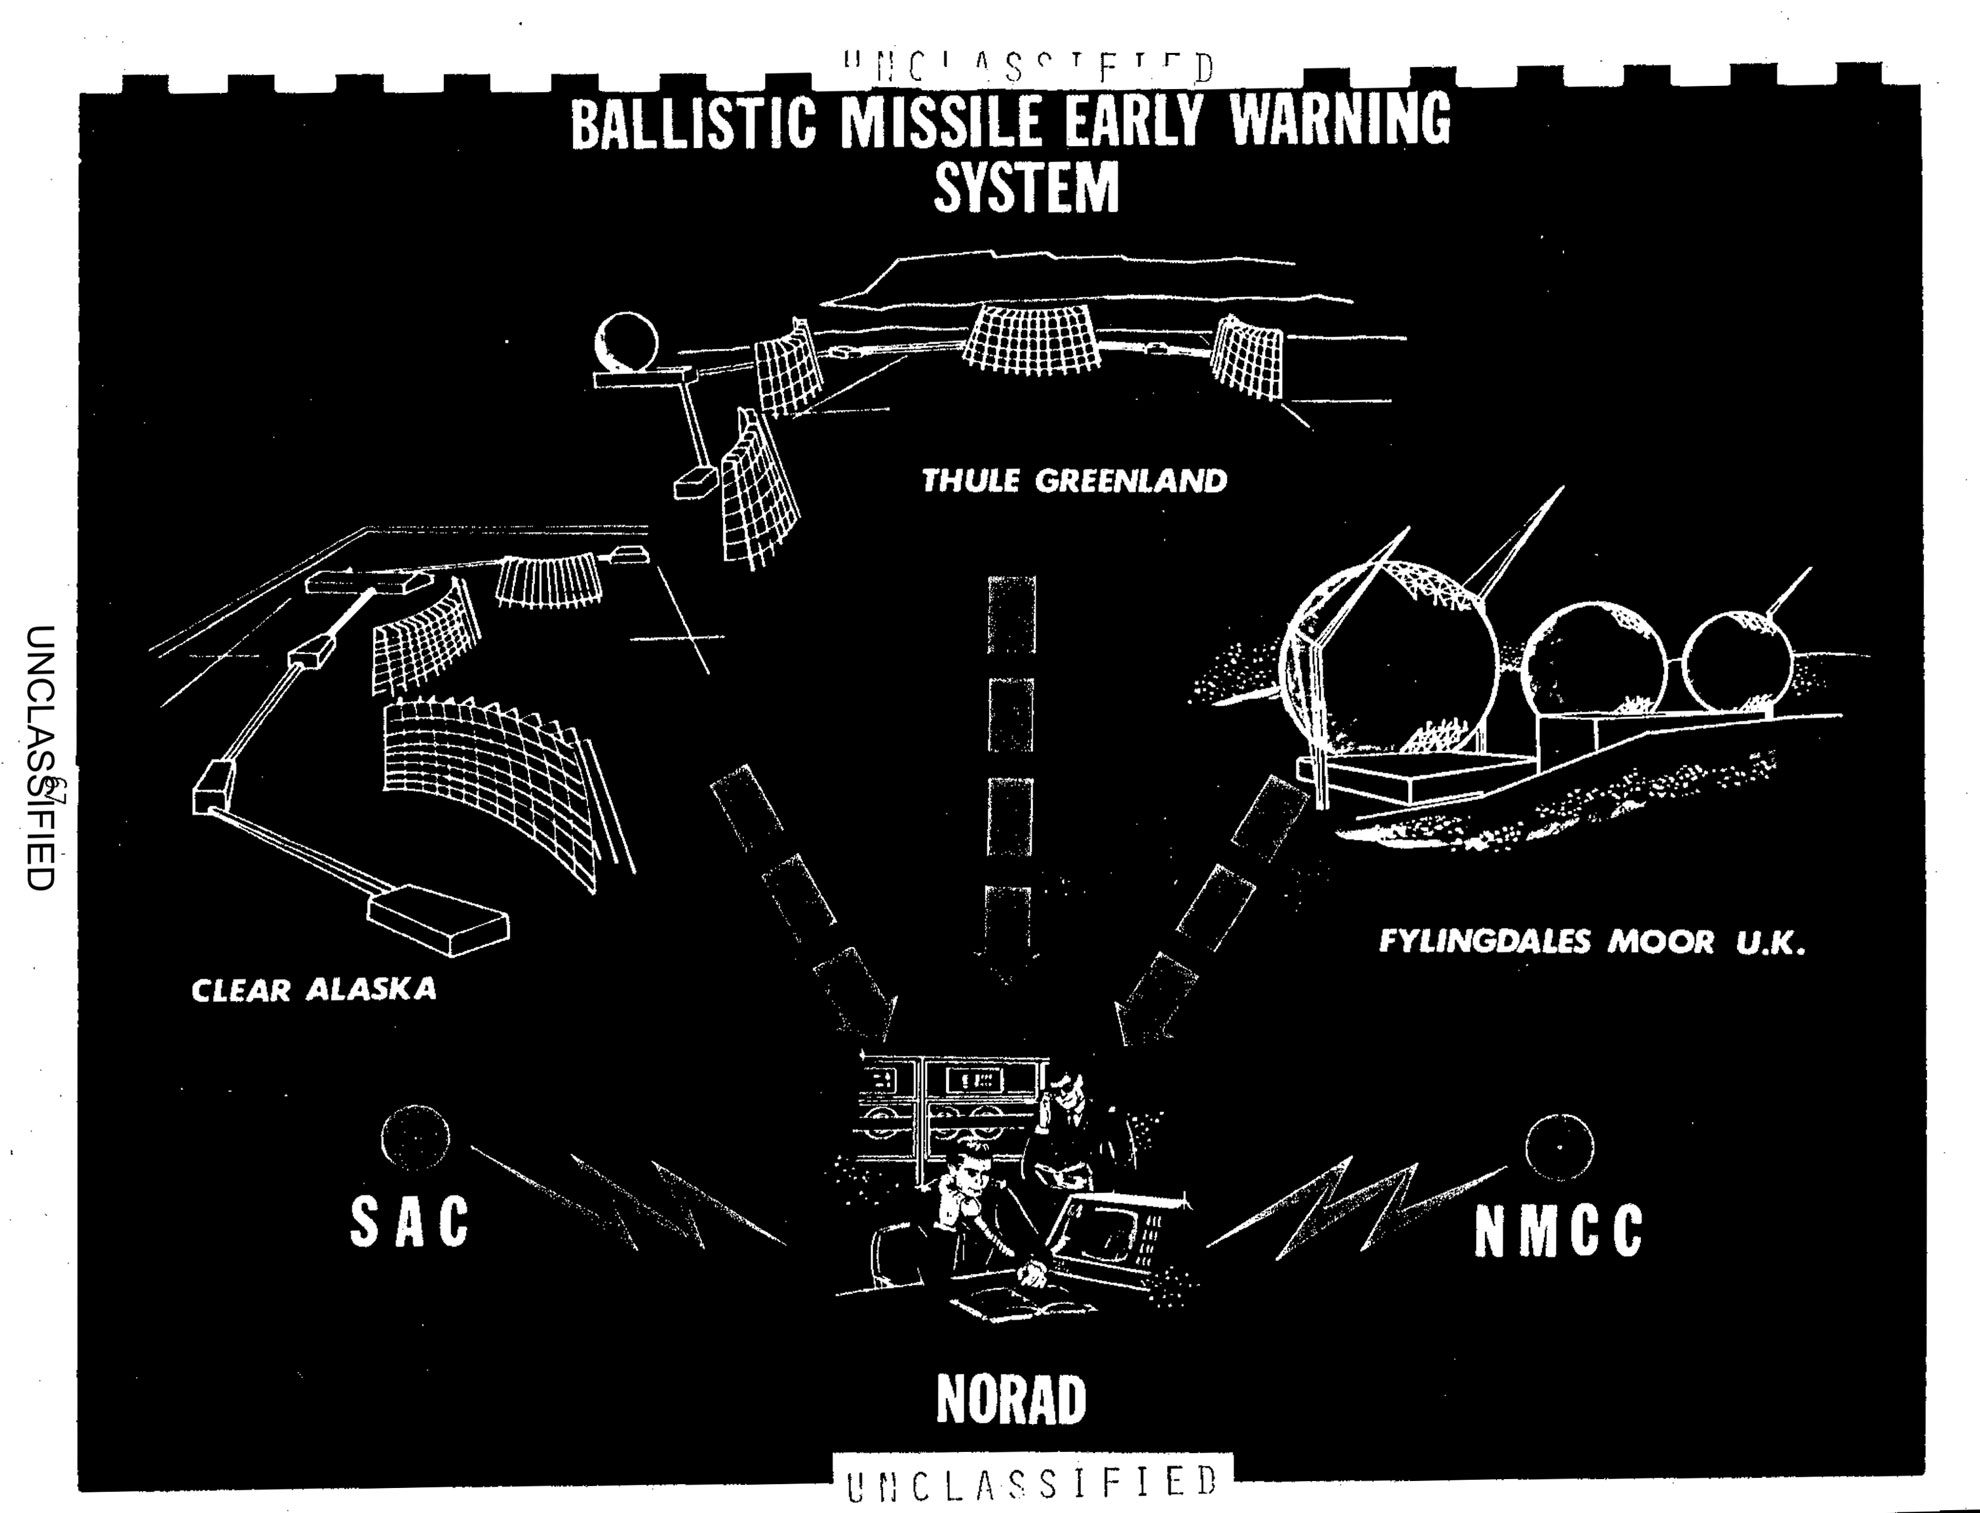 Drawing of Ballistic Missile Early Warning System (BMEWS) sites in Alaska, Greenland, and the United Kingdom